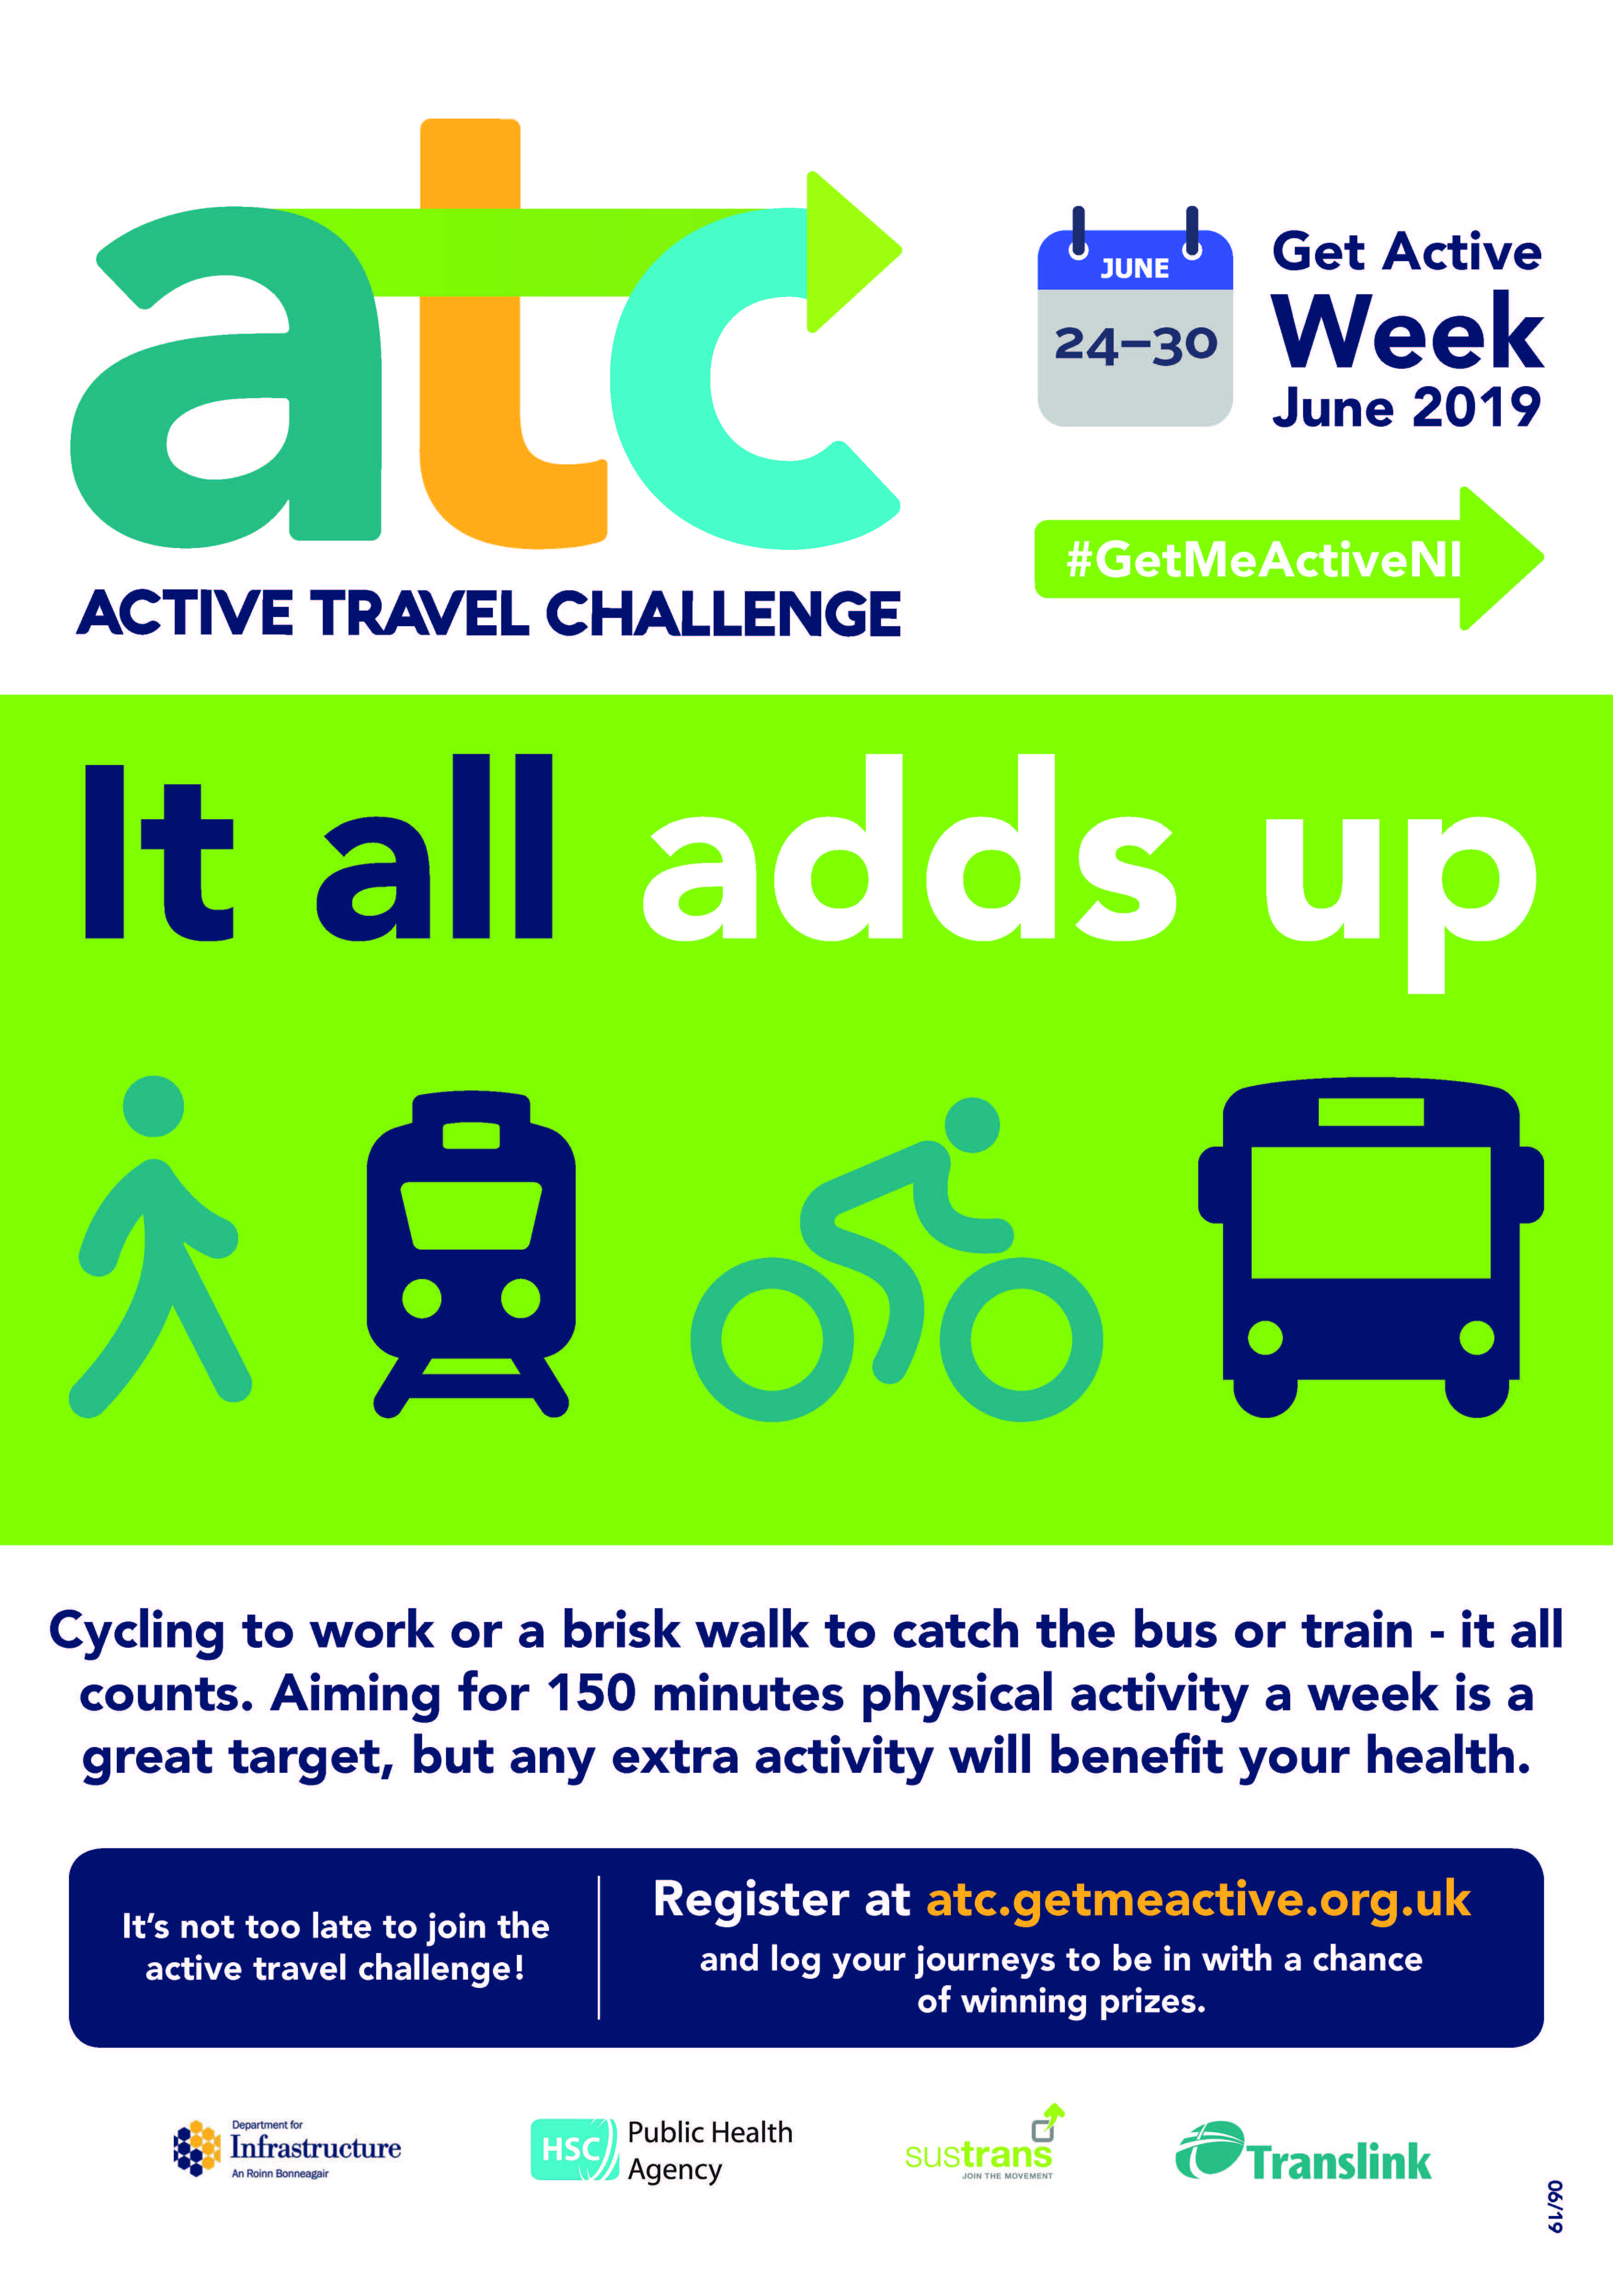 Image of Active Travel Challenge poster